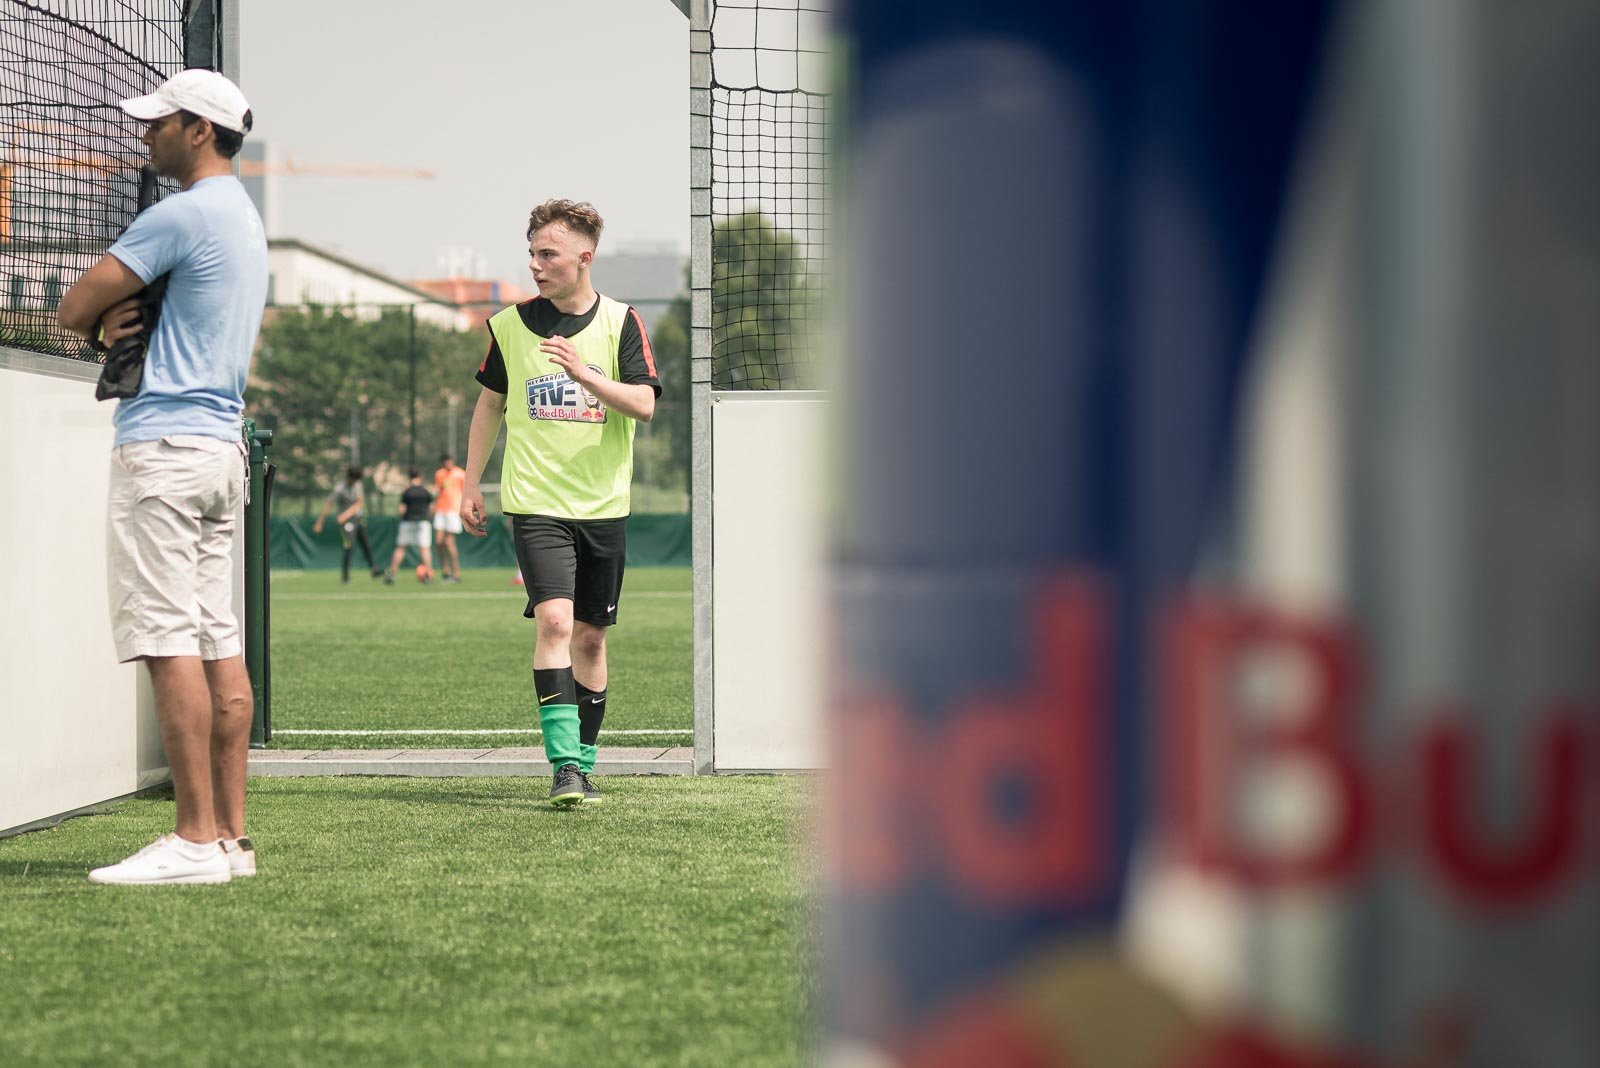 Player walking towards a life size can during Red Bull Neymar Jr's Five